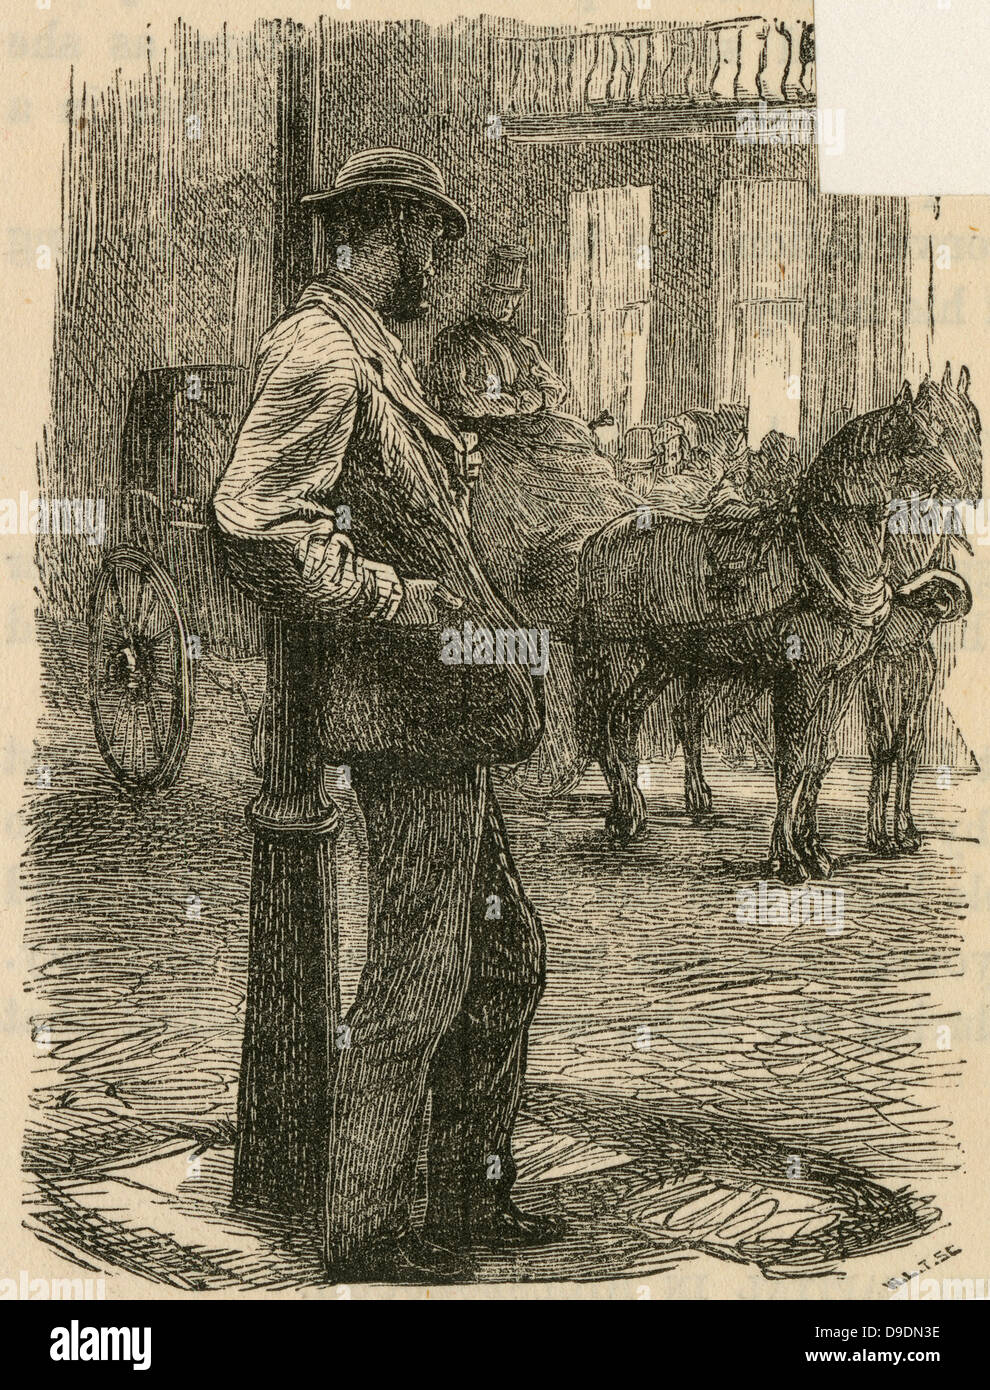 Man fallen on hard times looking at the ife he once had. Engraving, 1869 - Stock Image